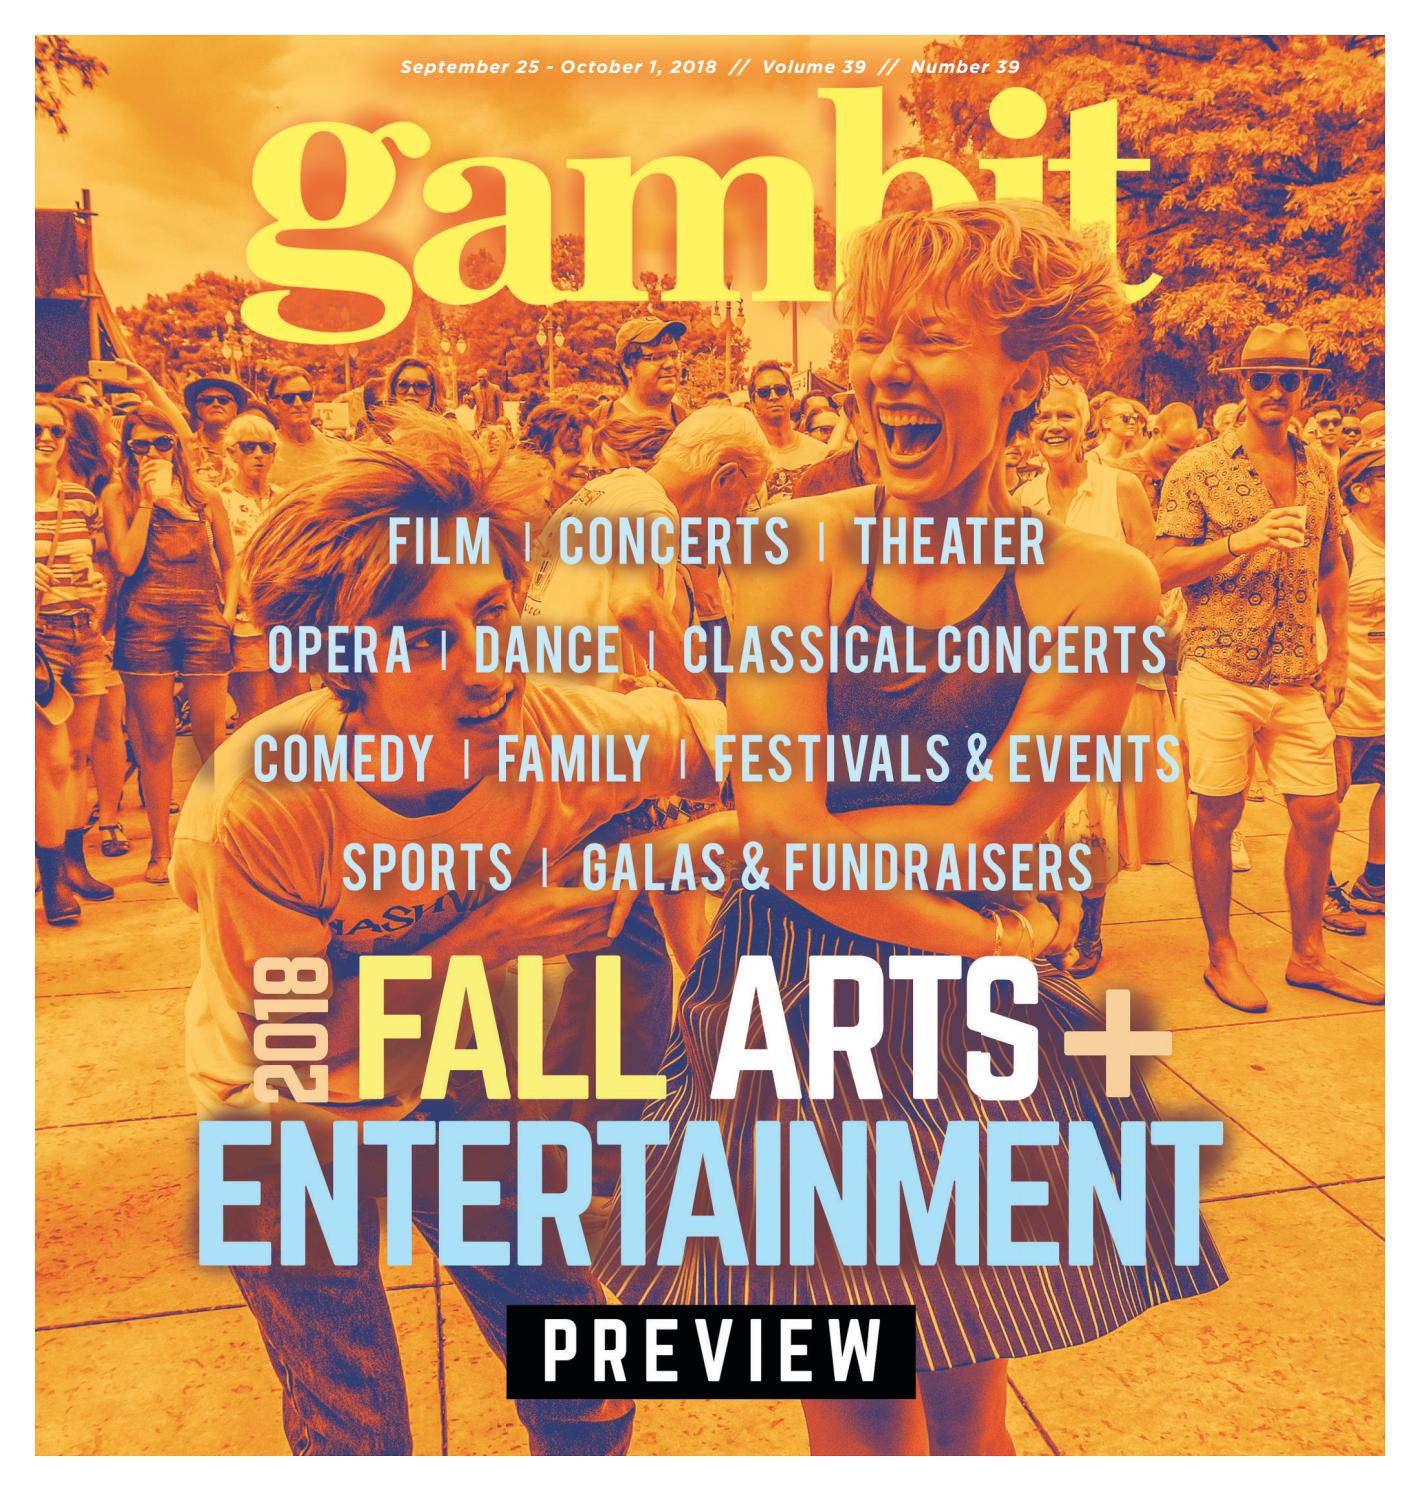 Gambit s Digital Edition, September 25, 2018 by Gambit New Orleans - issuu 401baf38167c